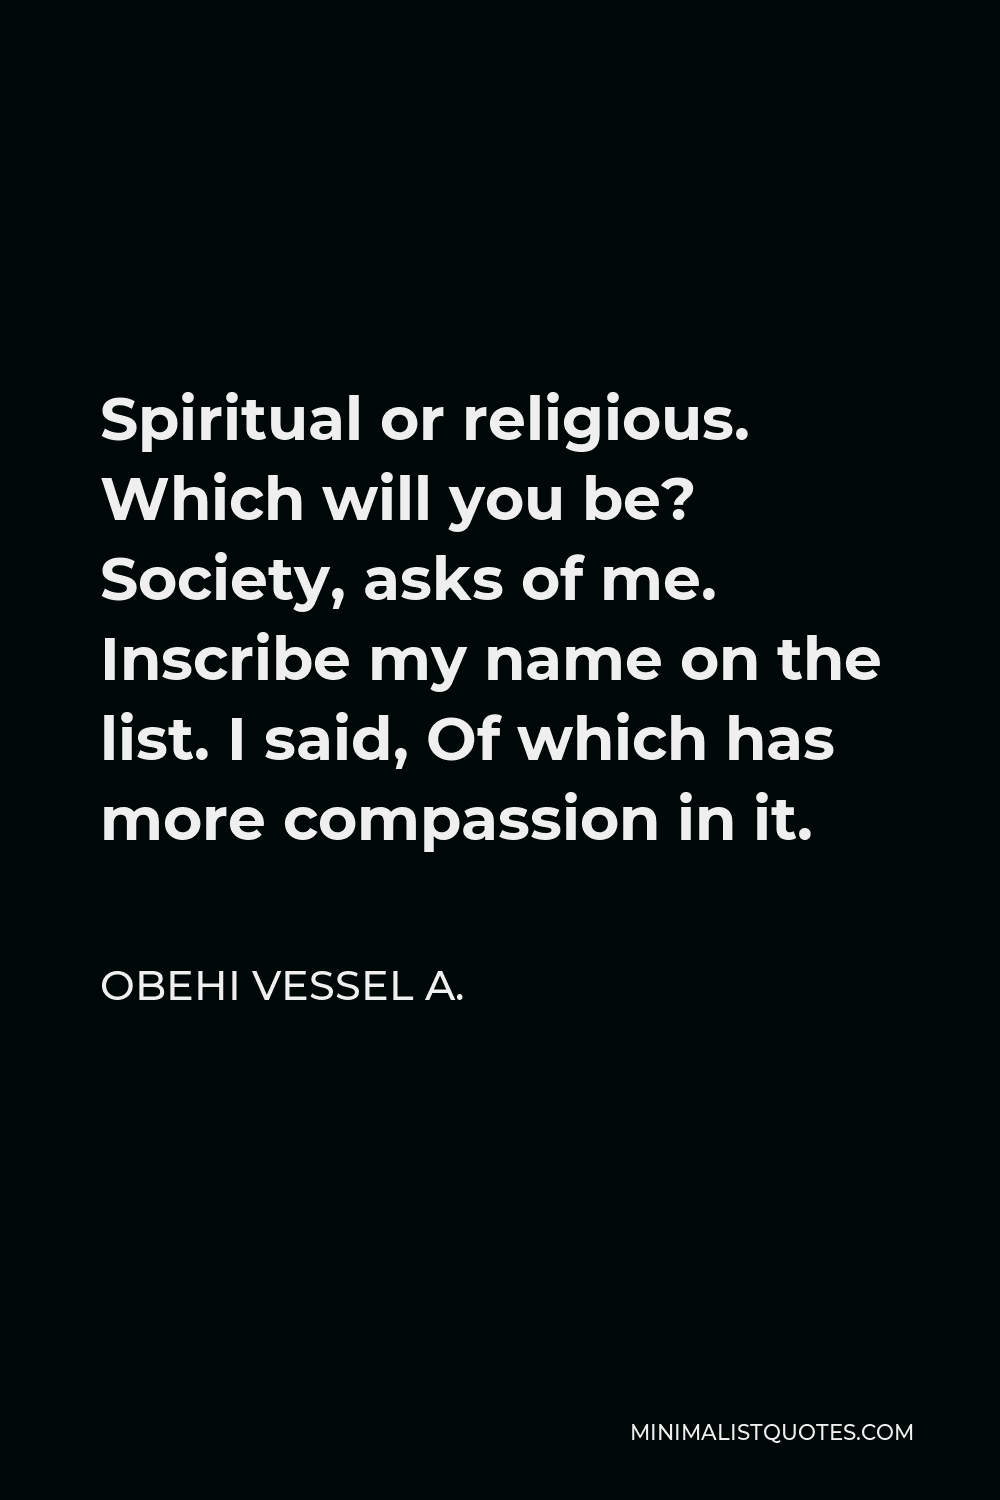 Obehi Vessel A. Quote - Spiritual or religious. Which will you be? Society, asks of me. Inscribe my name on the list. I said, Of which has more compassion in it.